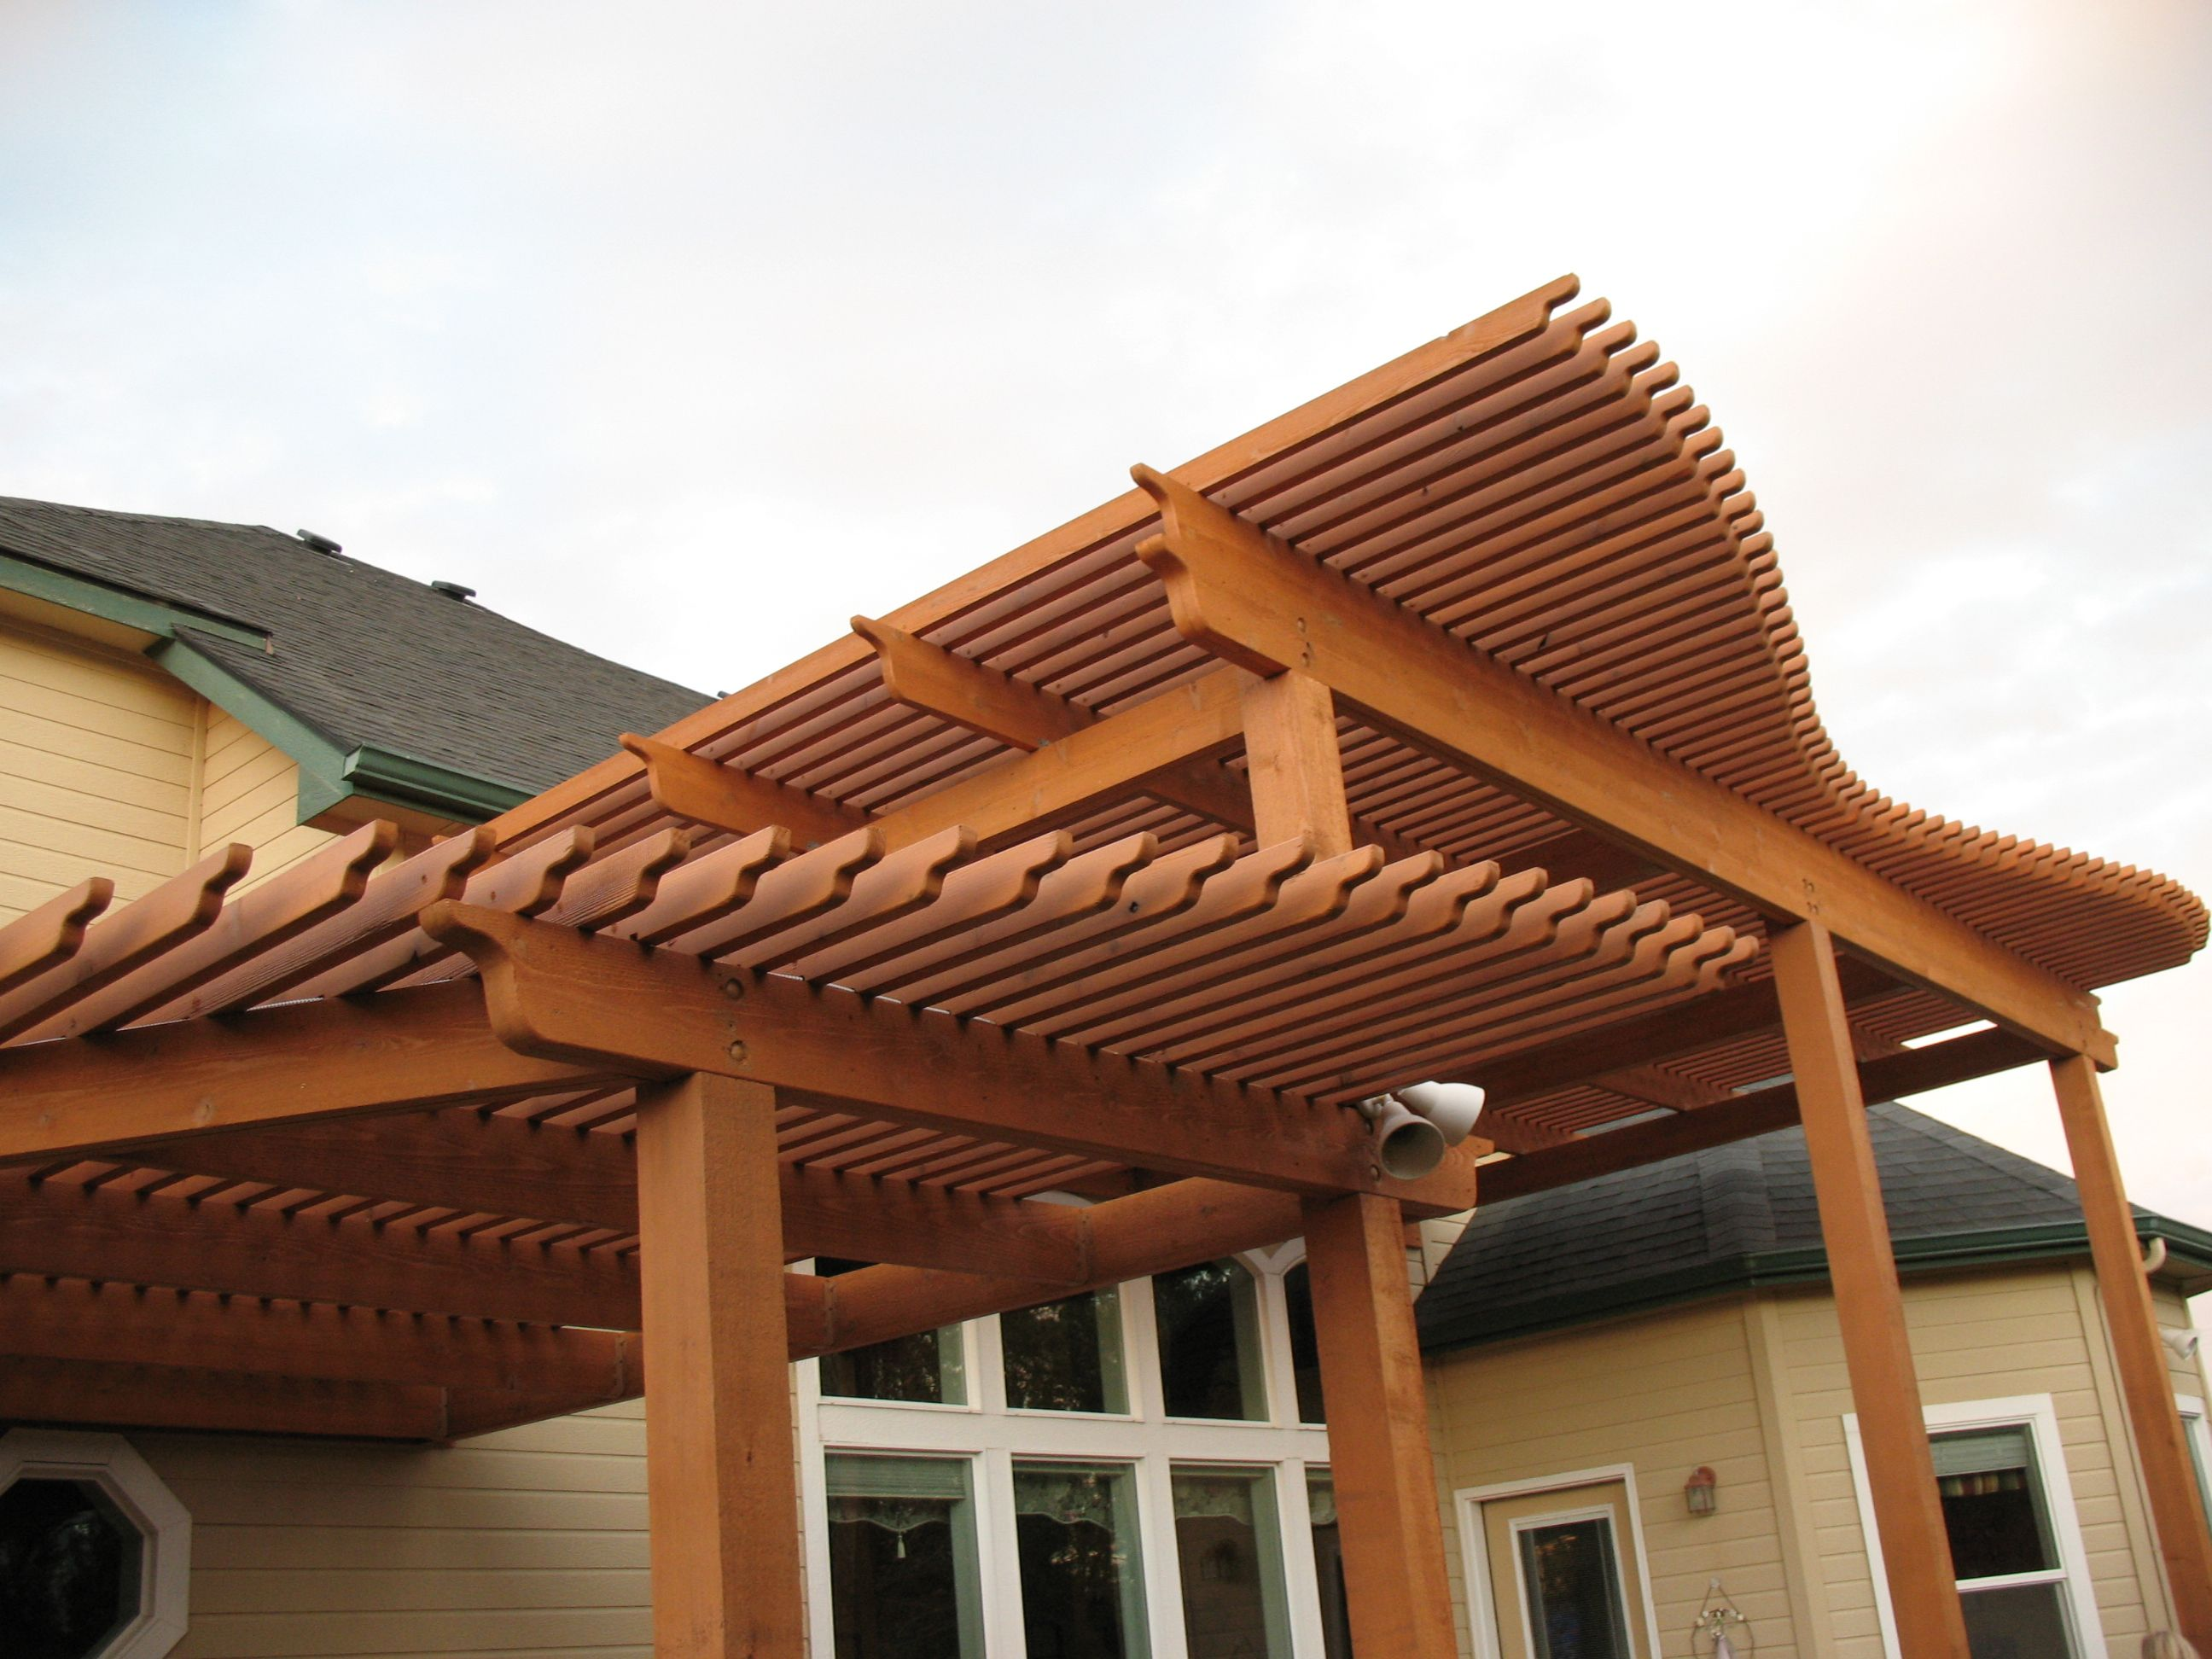 Sketch of Wooden Patio Covers Design Exteriors